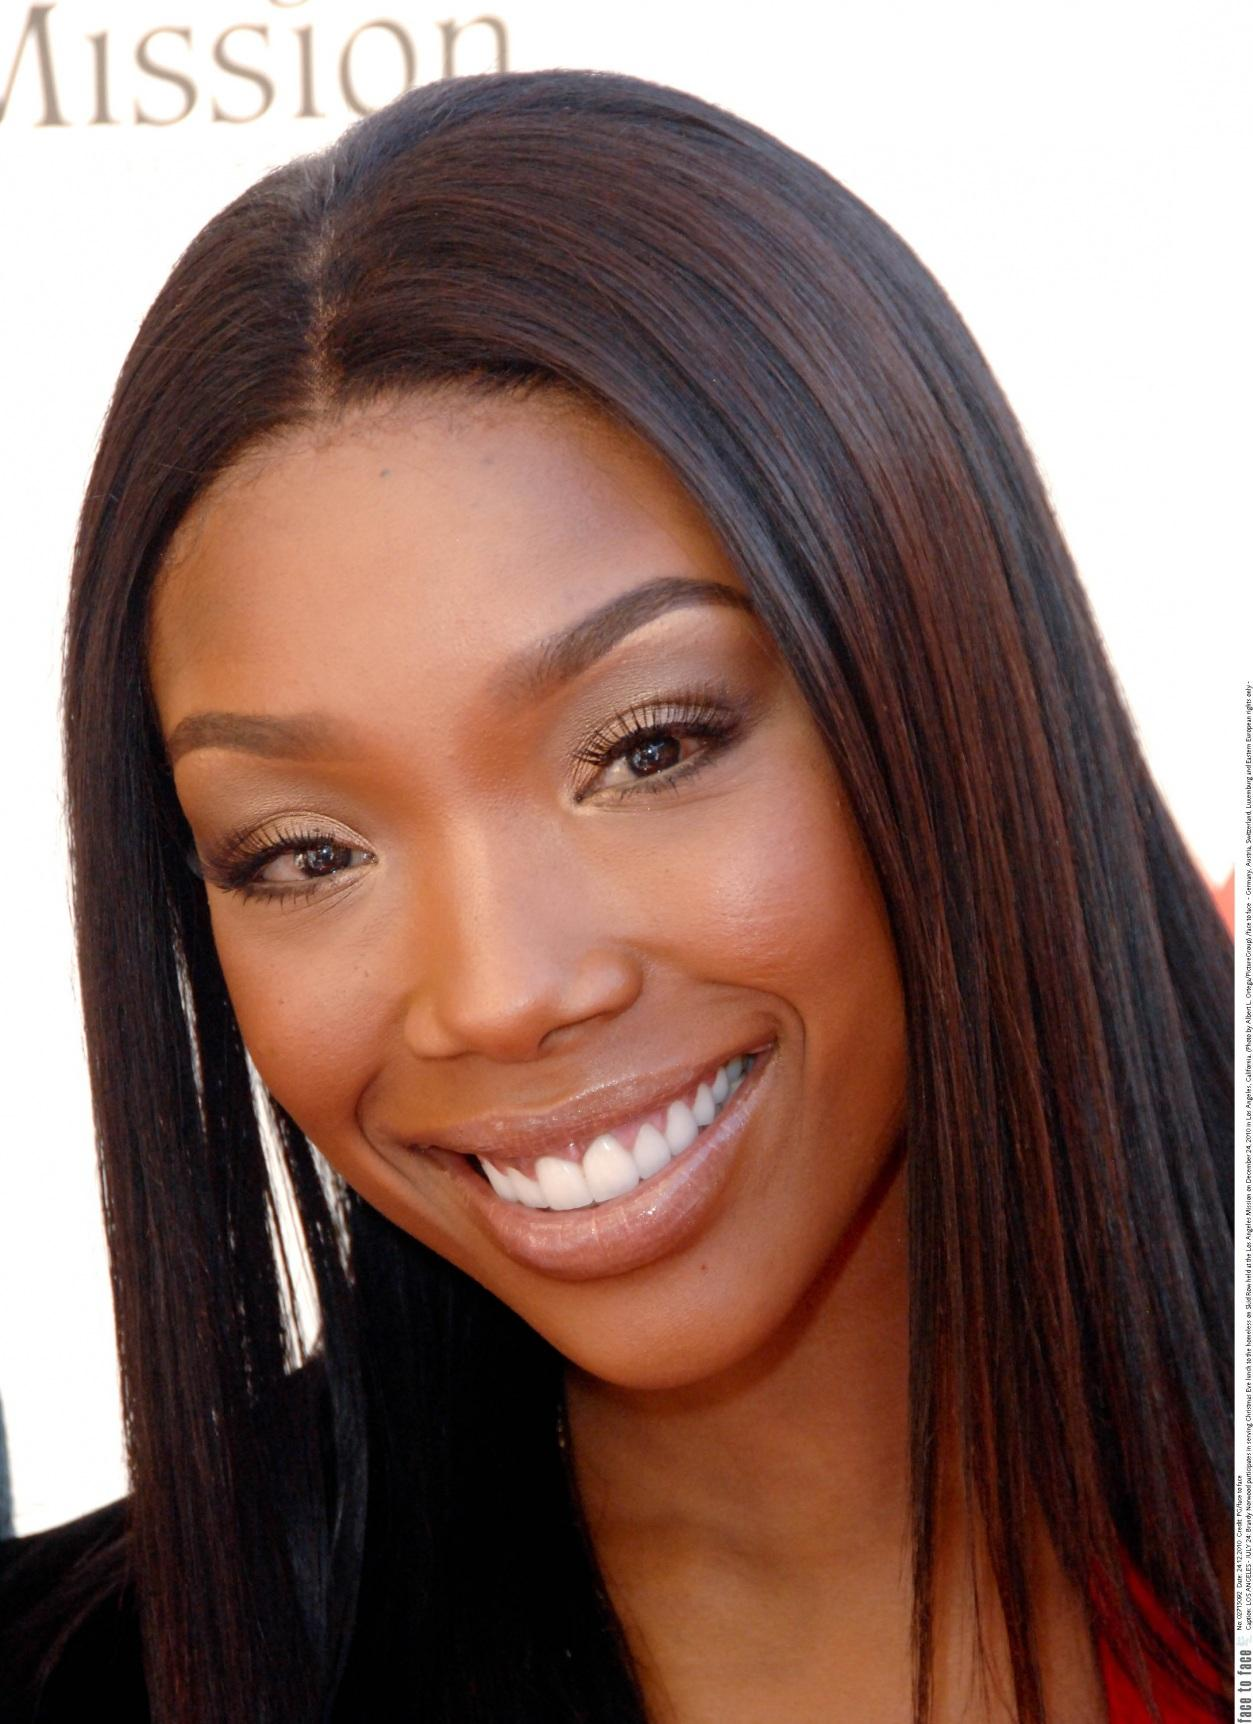 """10 -  In 2006, singer and """"America's Got Talent"""" judge Brandy Norwood was involved in a freeway pile-up that caused the death of Awatef Aboudihaj. Though Aboudihaj had struck the vehicle in front of her before Brandy hit her rear bumper, witnesses on the scene said the singer claimed responsibility for the accident, repeatedly saying, """"I should have stopped."""""""